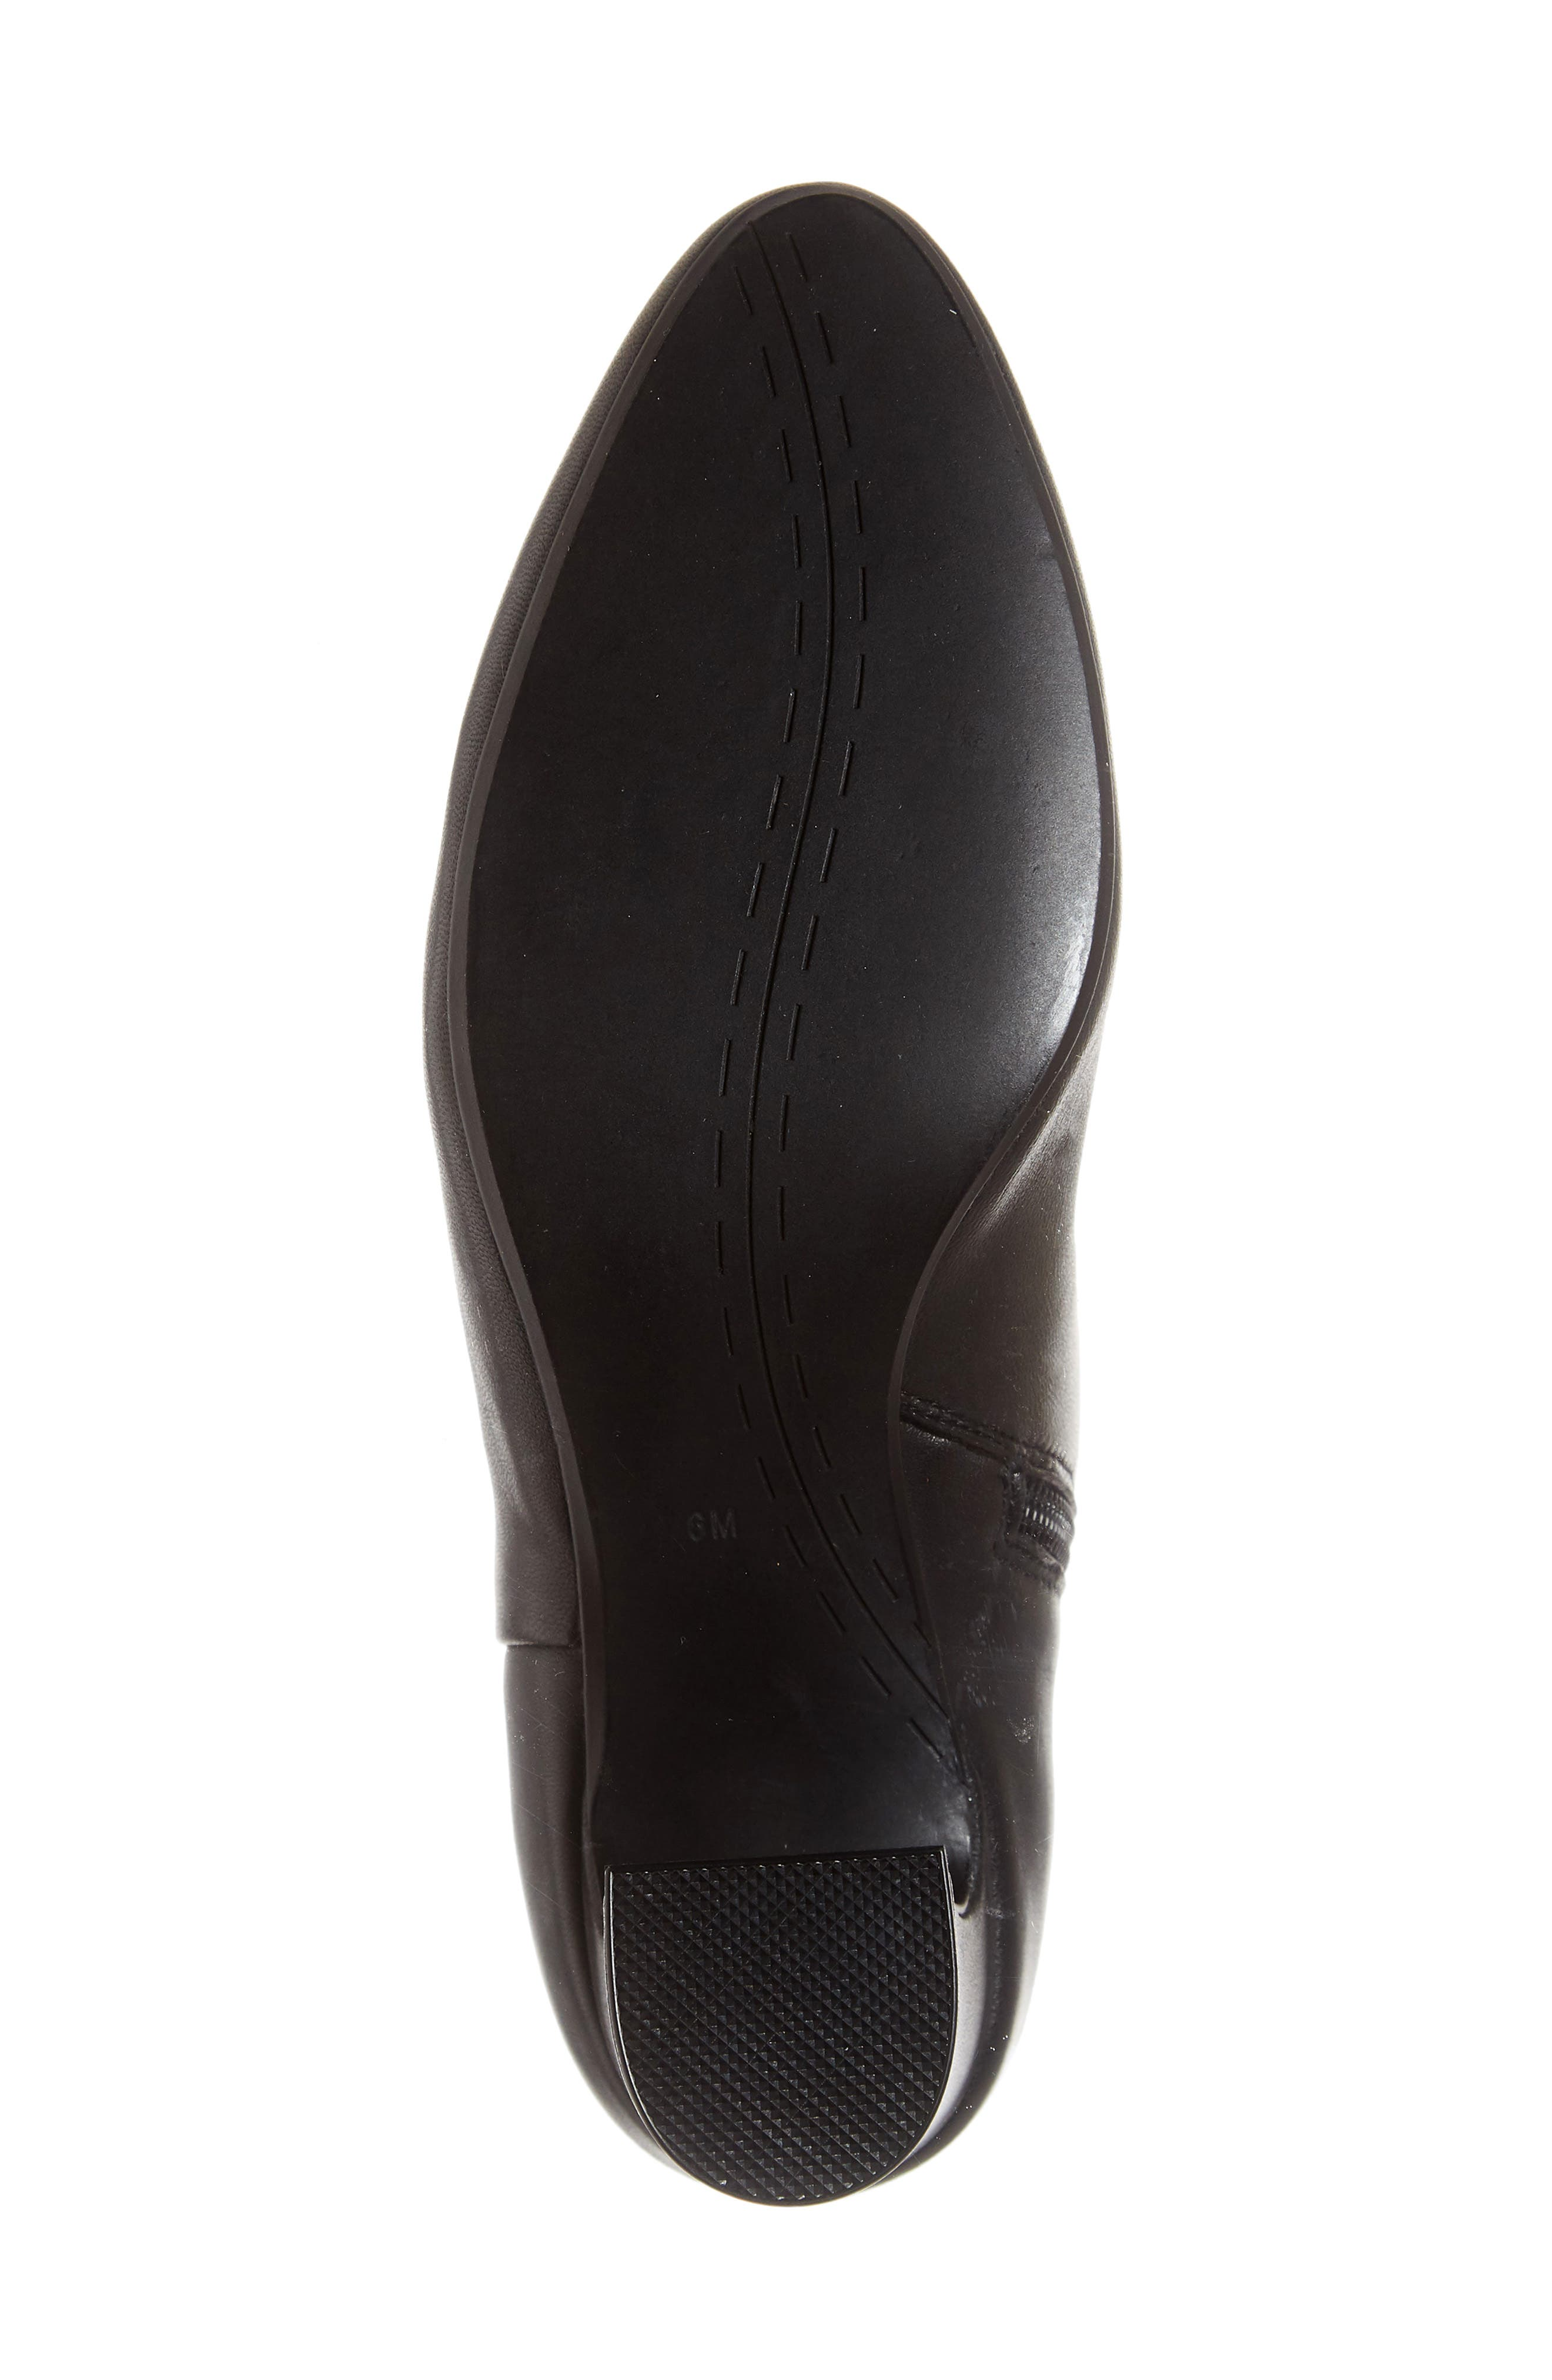 Dany Bootie,                             Alternate thumbnail 6, color,                             BLACK LEATHER